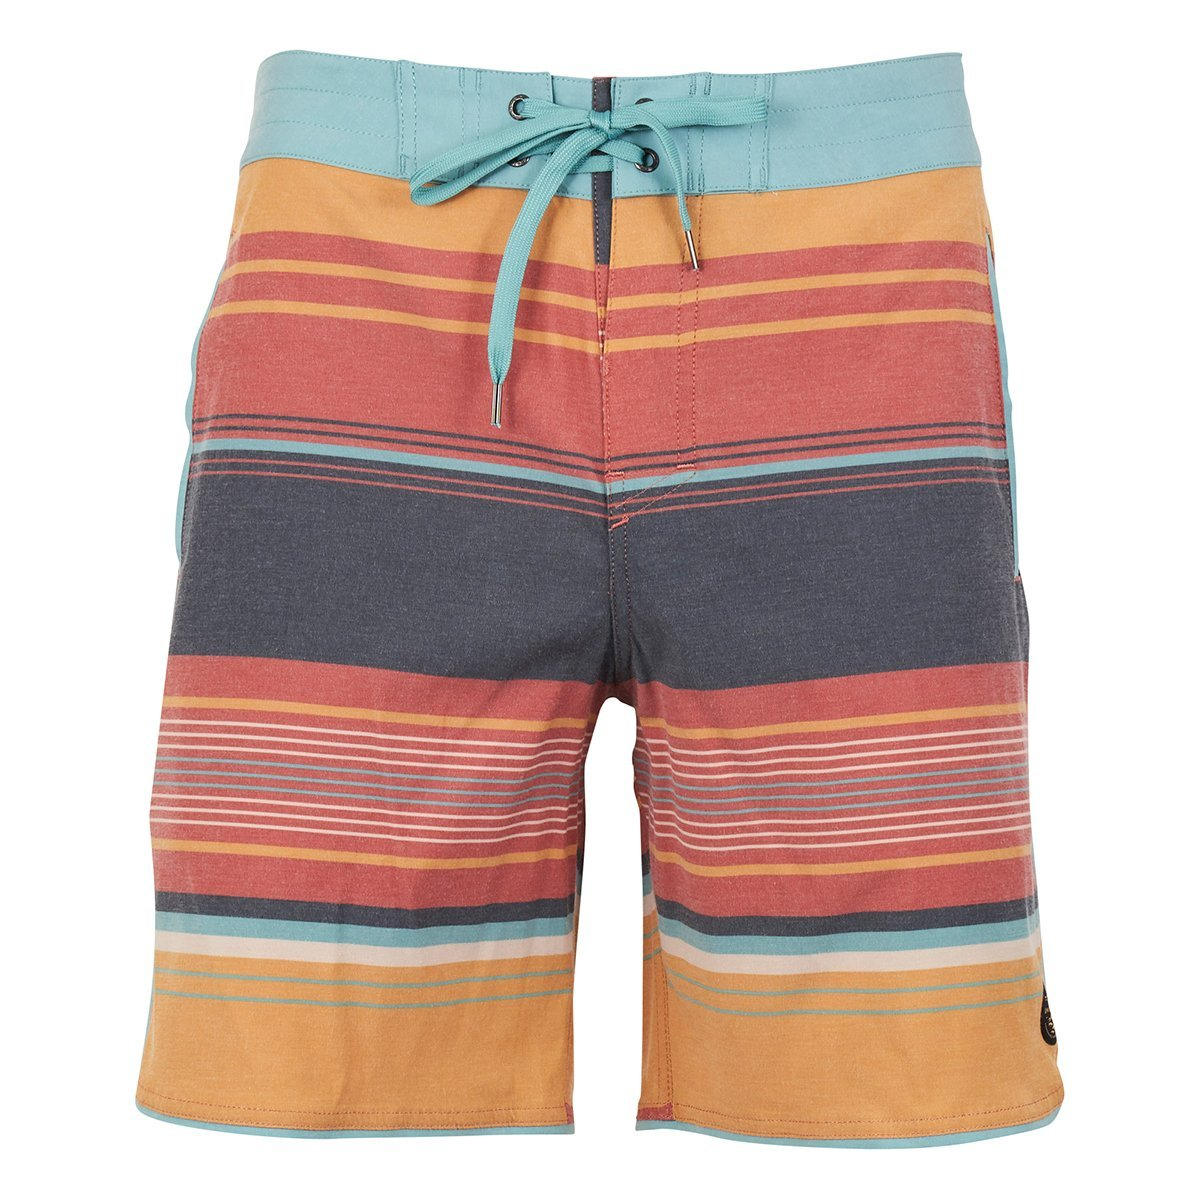 United By Blue | Men's Boardshorts | Seabed Scallop Board Shorts | Canyon Orange